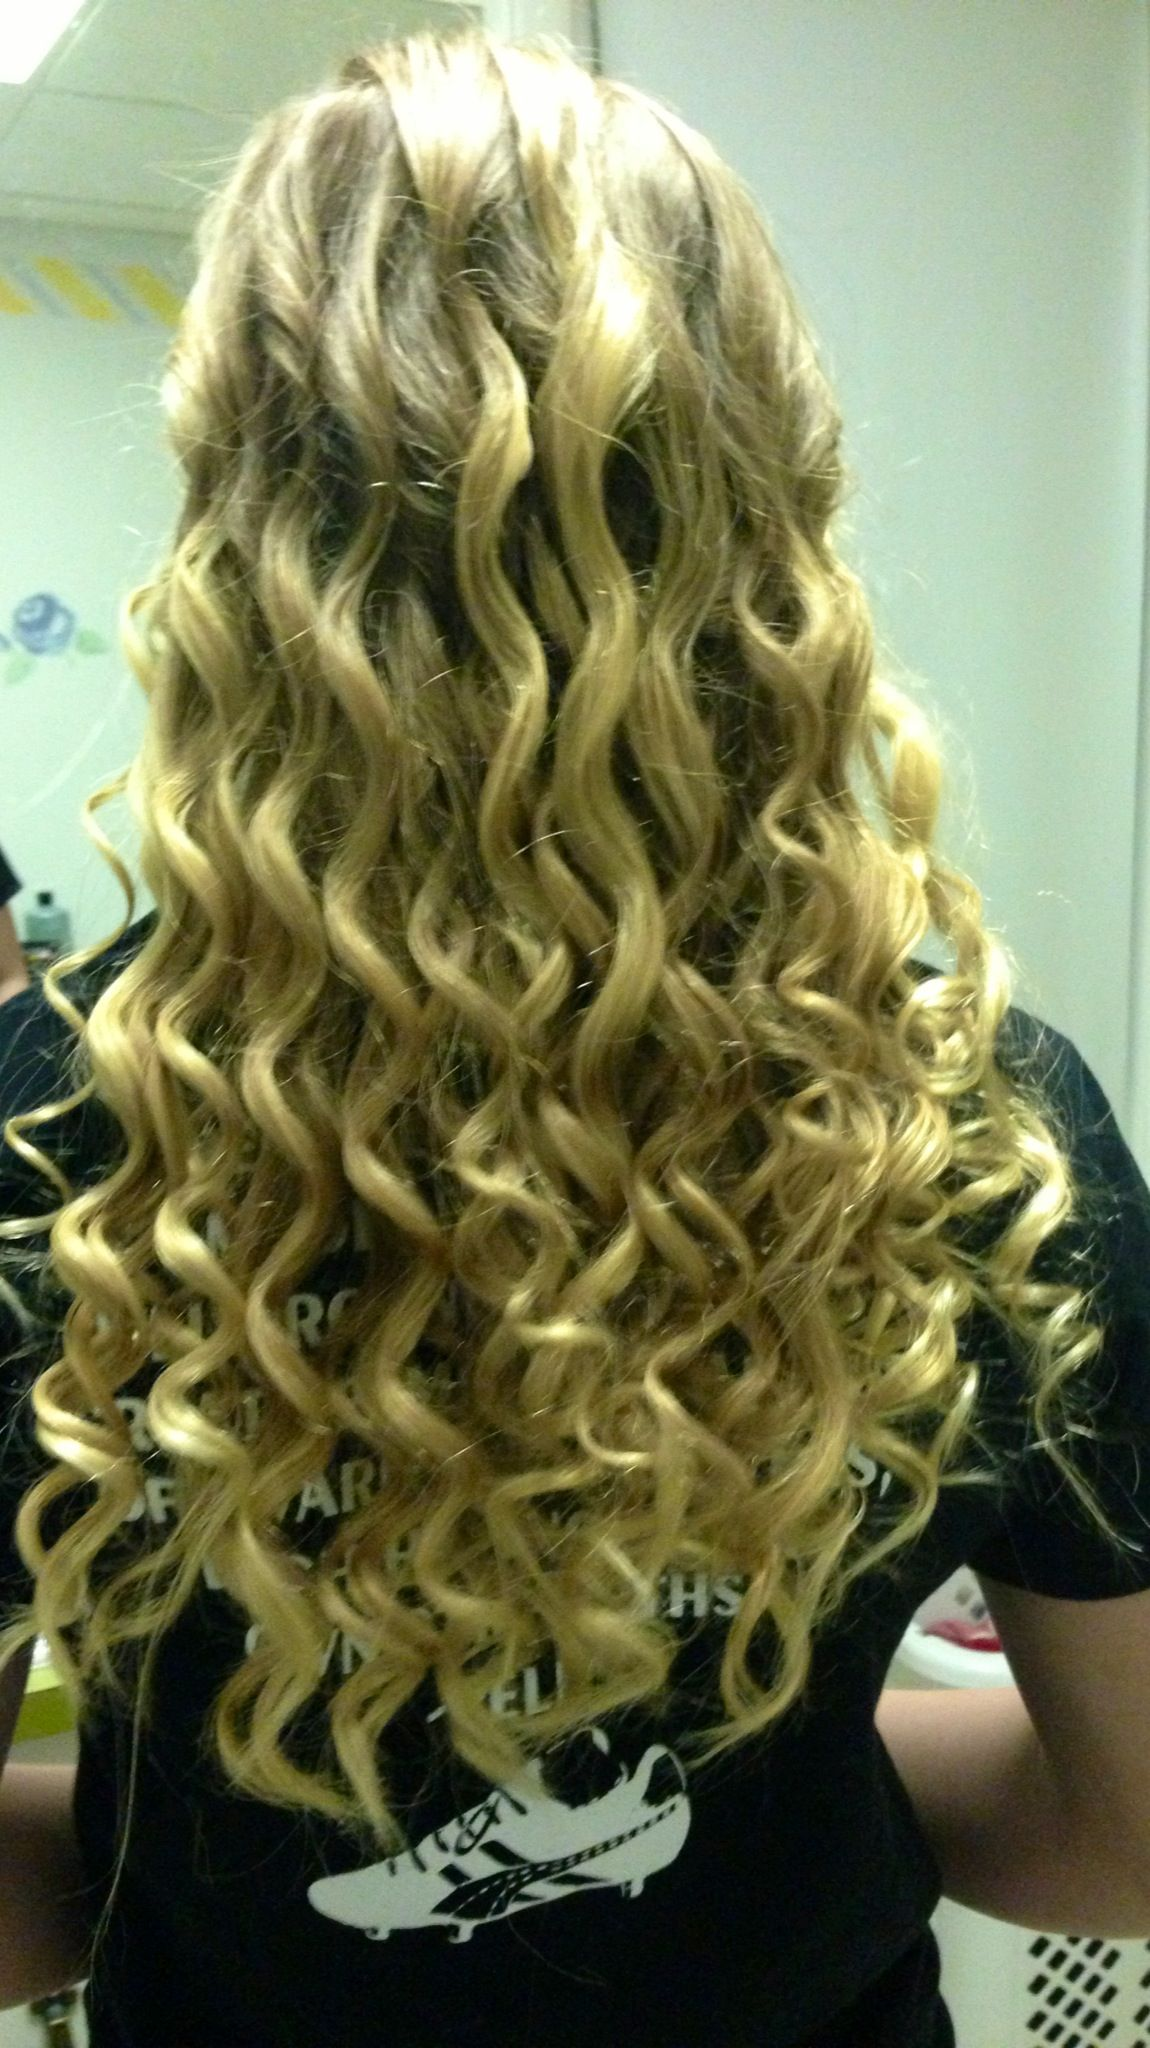 Just Wash Your Hair At Night And Then Dip In Fresh Pickle Juice Let Dry While Sleeping To Create Natural Curls That Are S Pretty Hairstyles Hair Natural Curls